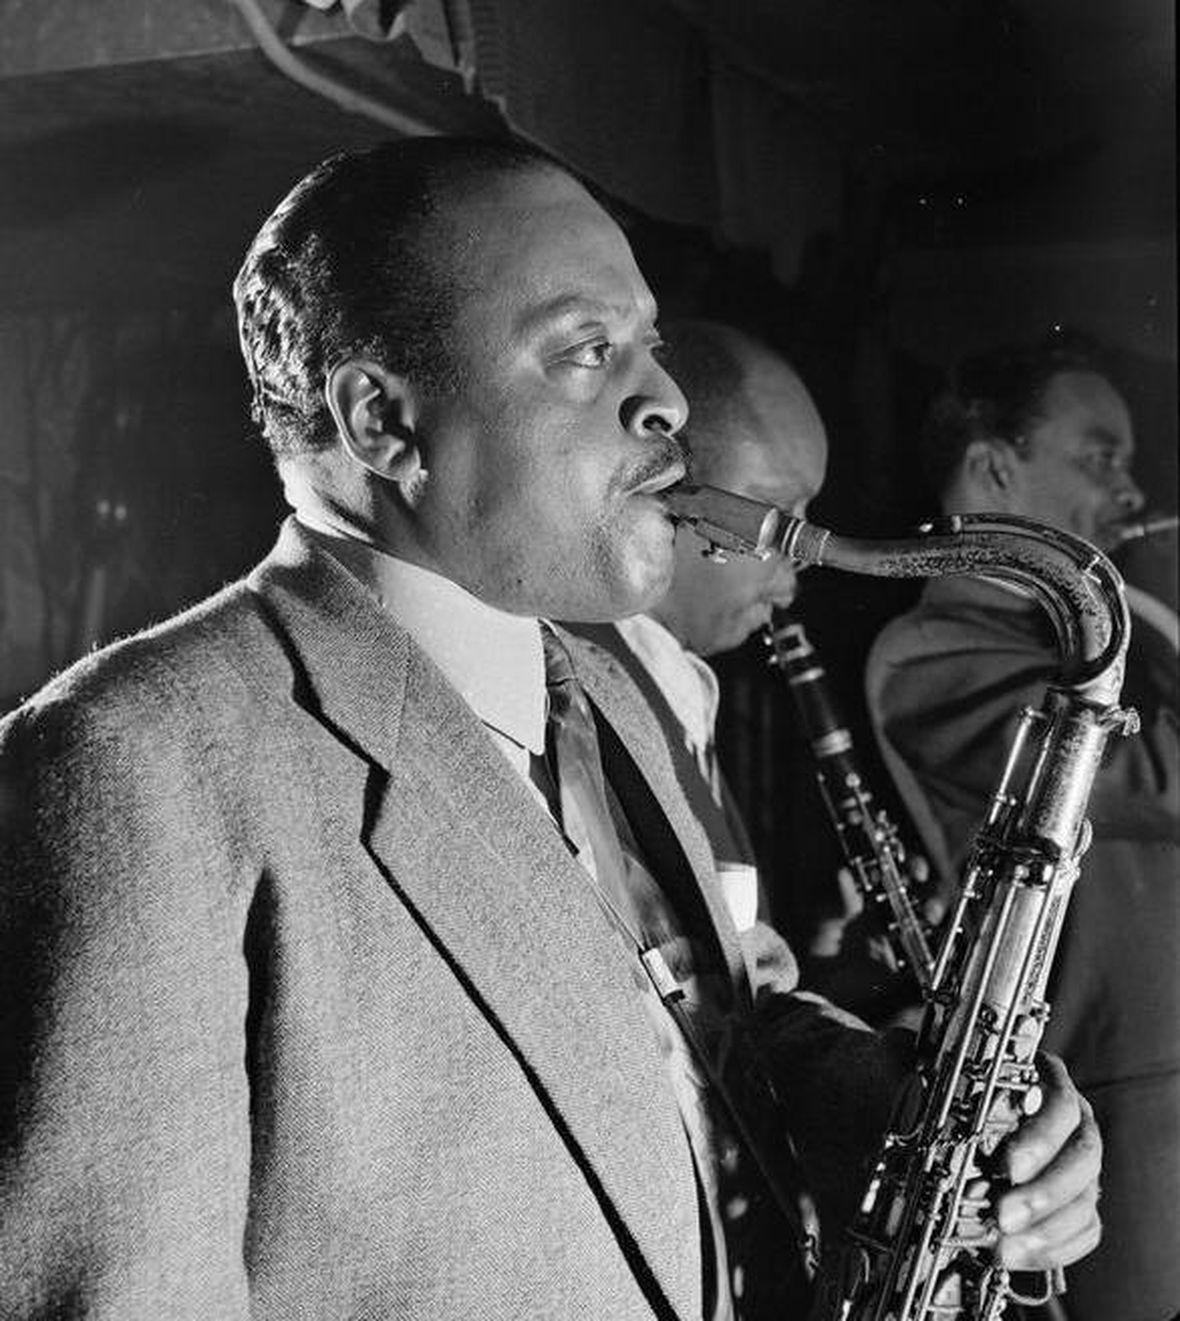 p. 178, Ben Webster, 1945, William Gottlieb